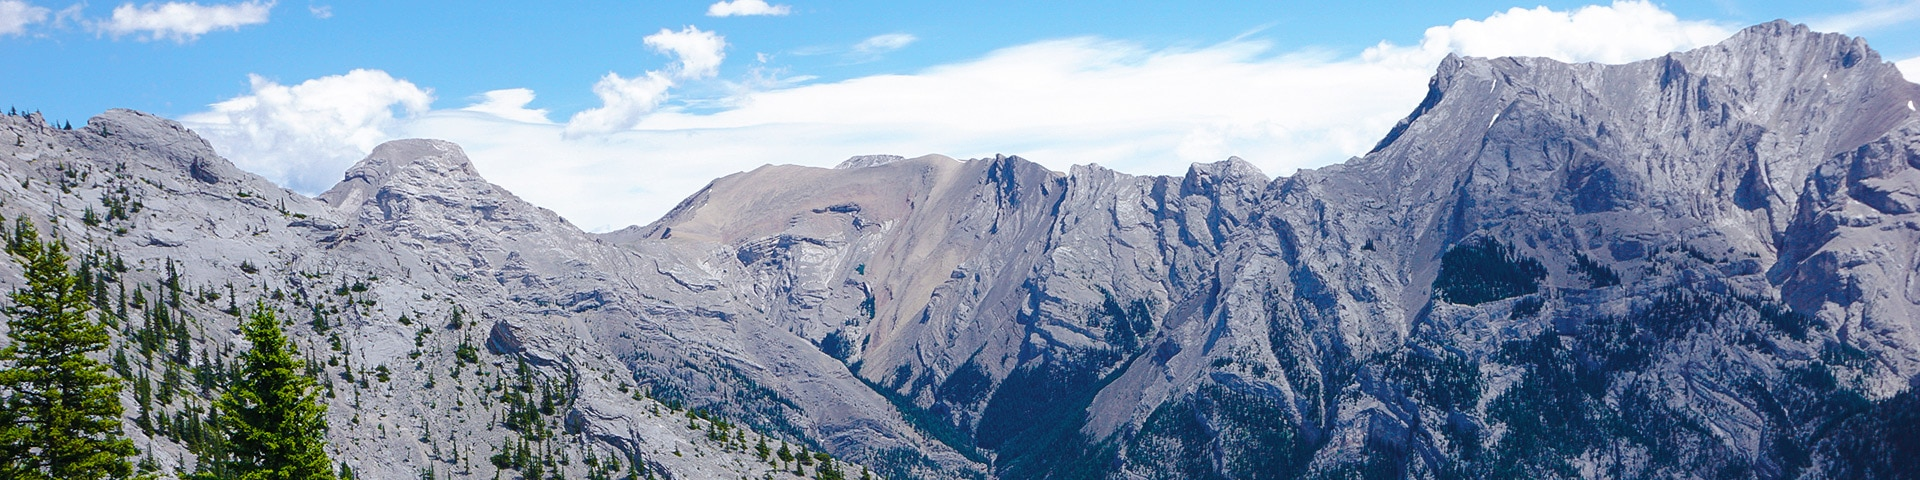 Panorama of the Lady MacDonald Tea House hike in Canmore, the Canadian Rockies